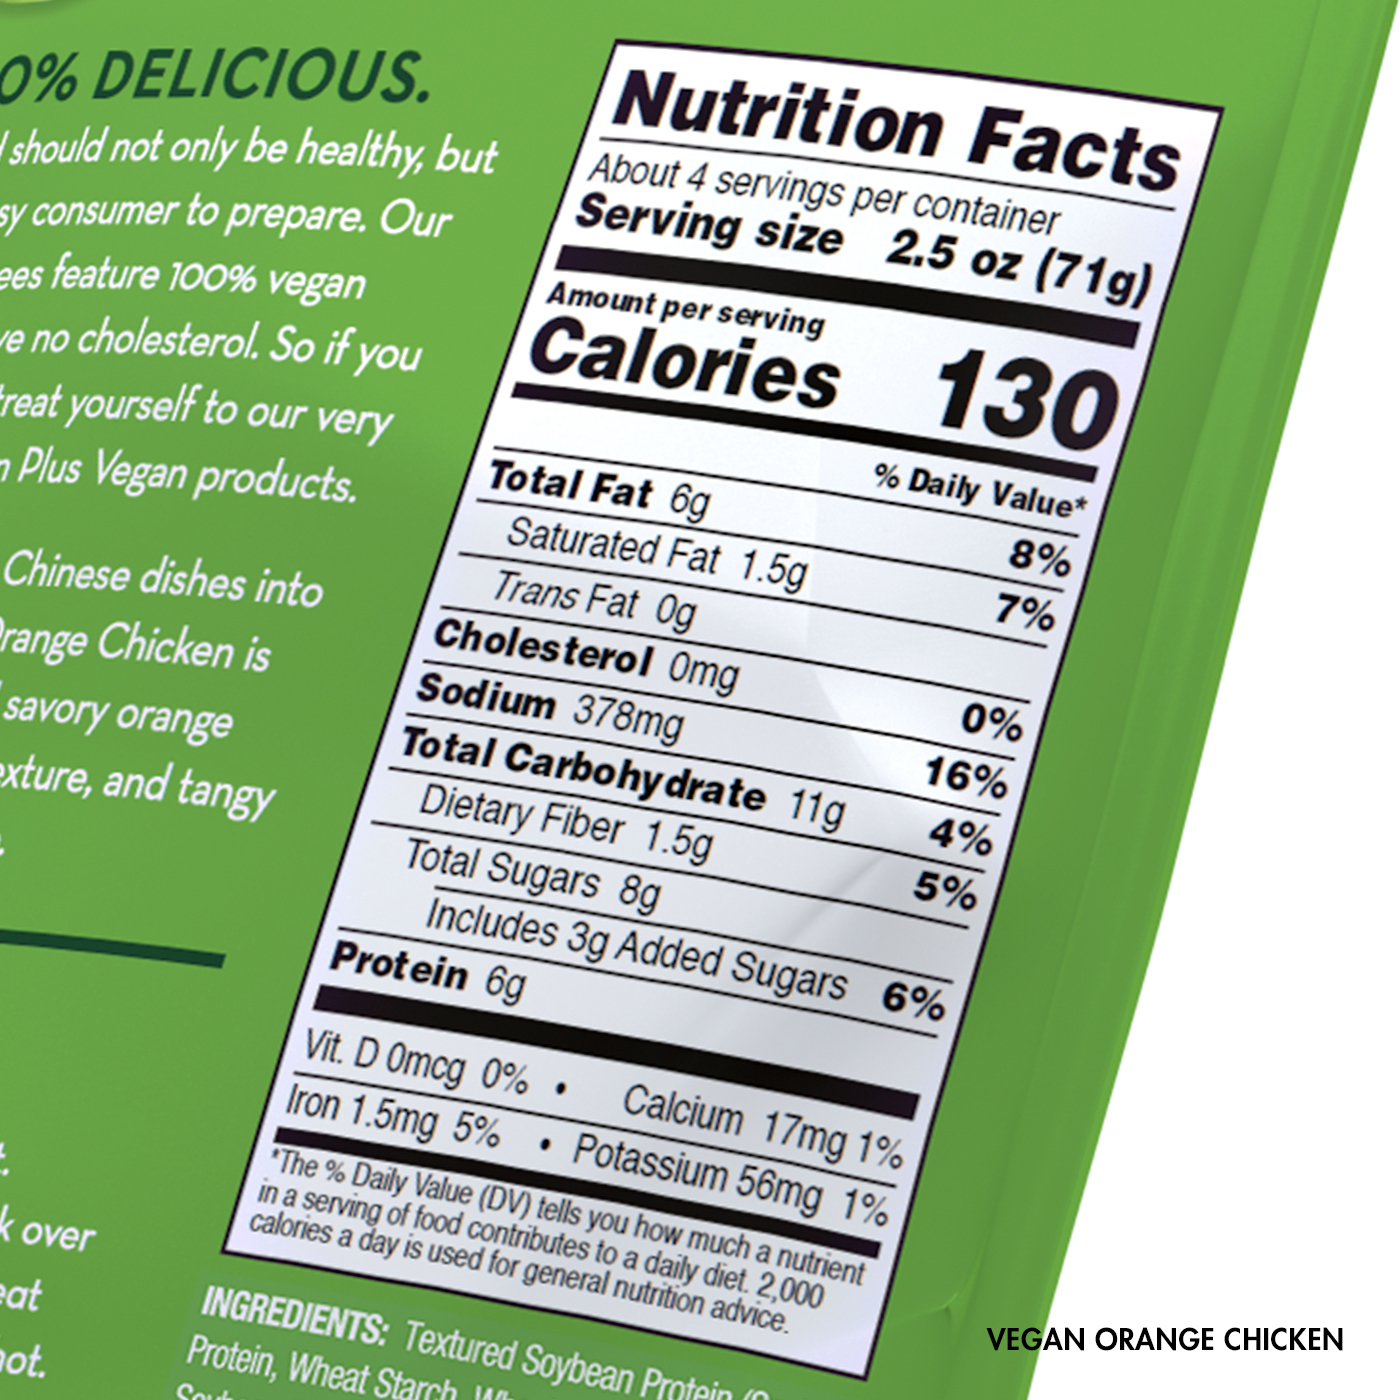 Vegan Orange Chicken Nutrition Facts